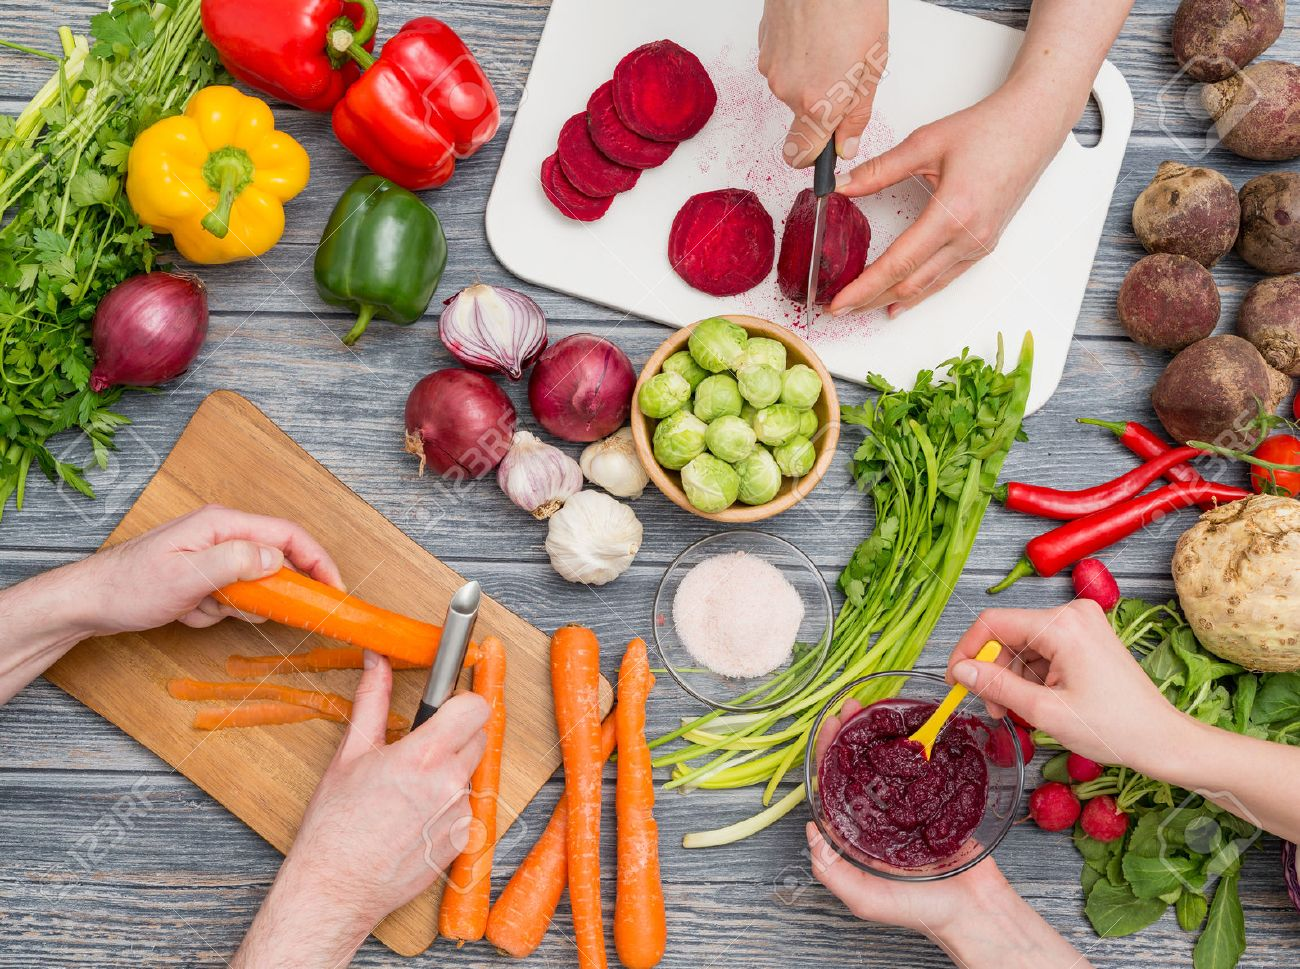 cooking food kitchen cutting cook hands man male knife preparation fresh preparing hand table salad concept - stock image Banque d'images - 72952395